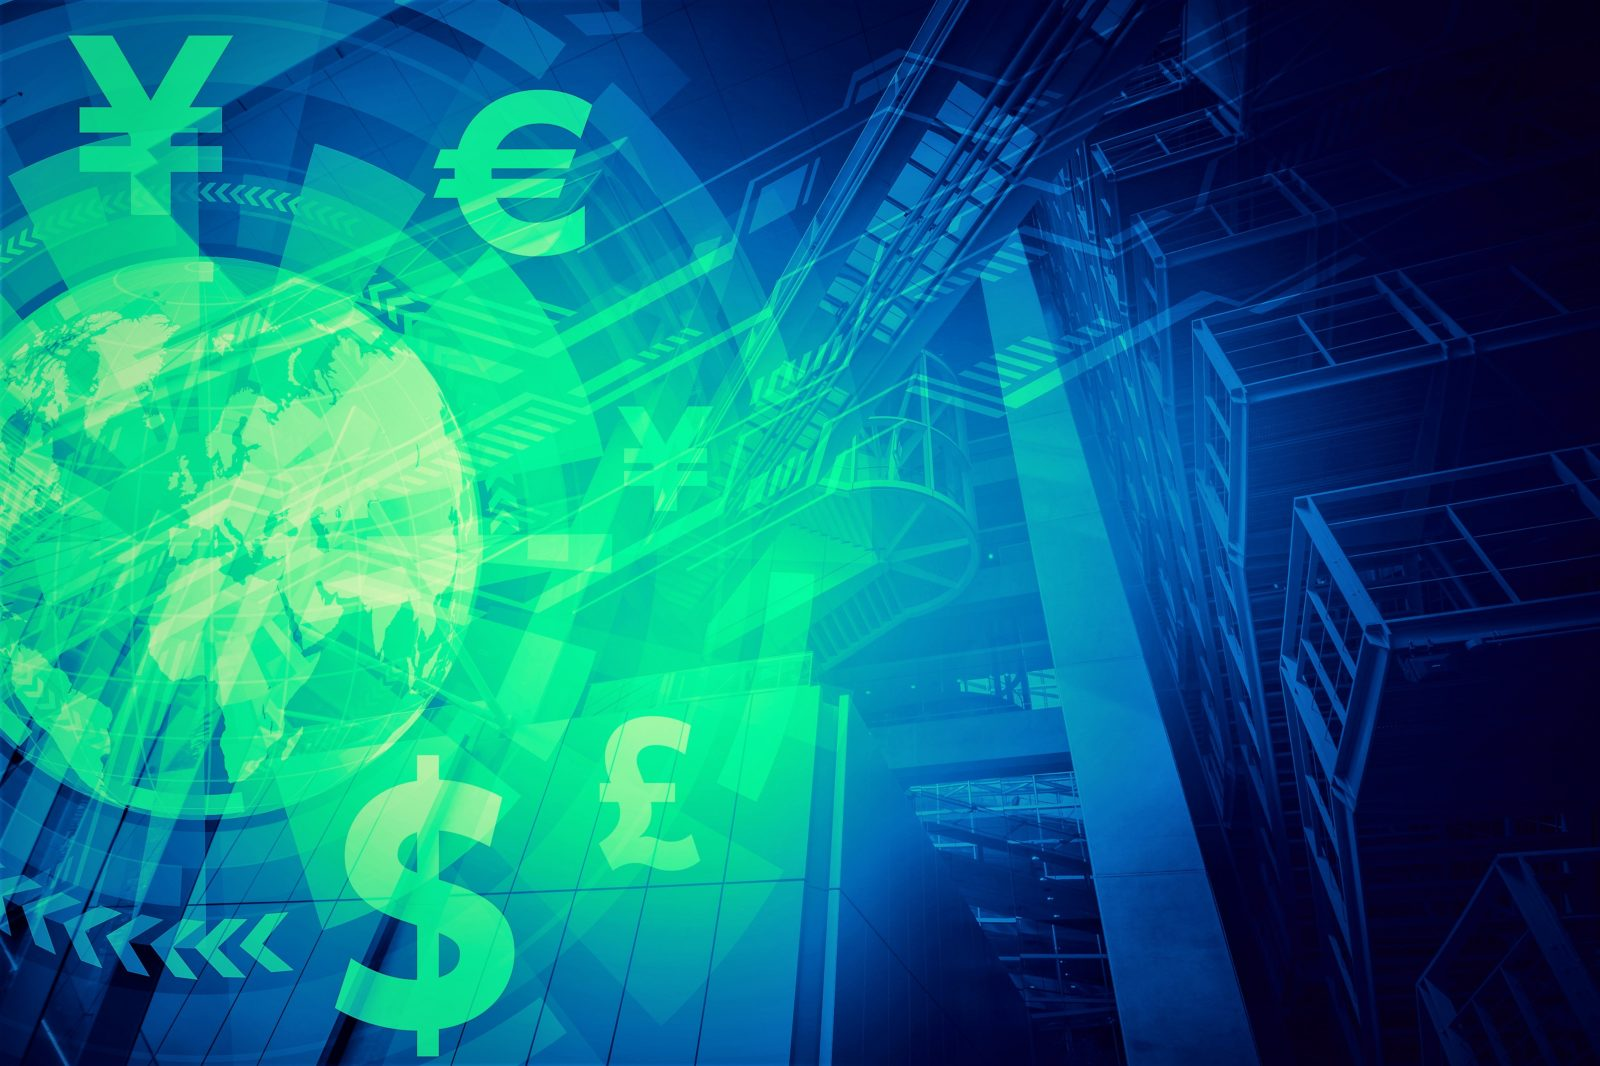 duo tone graphic of finance technology and global trade, abstract image visual